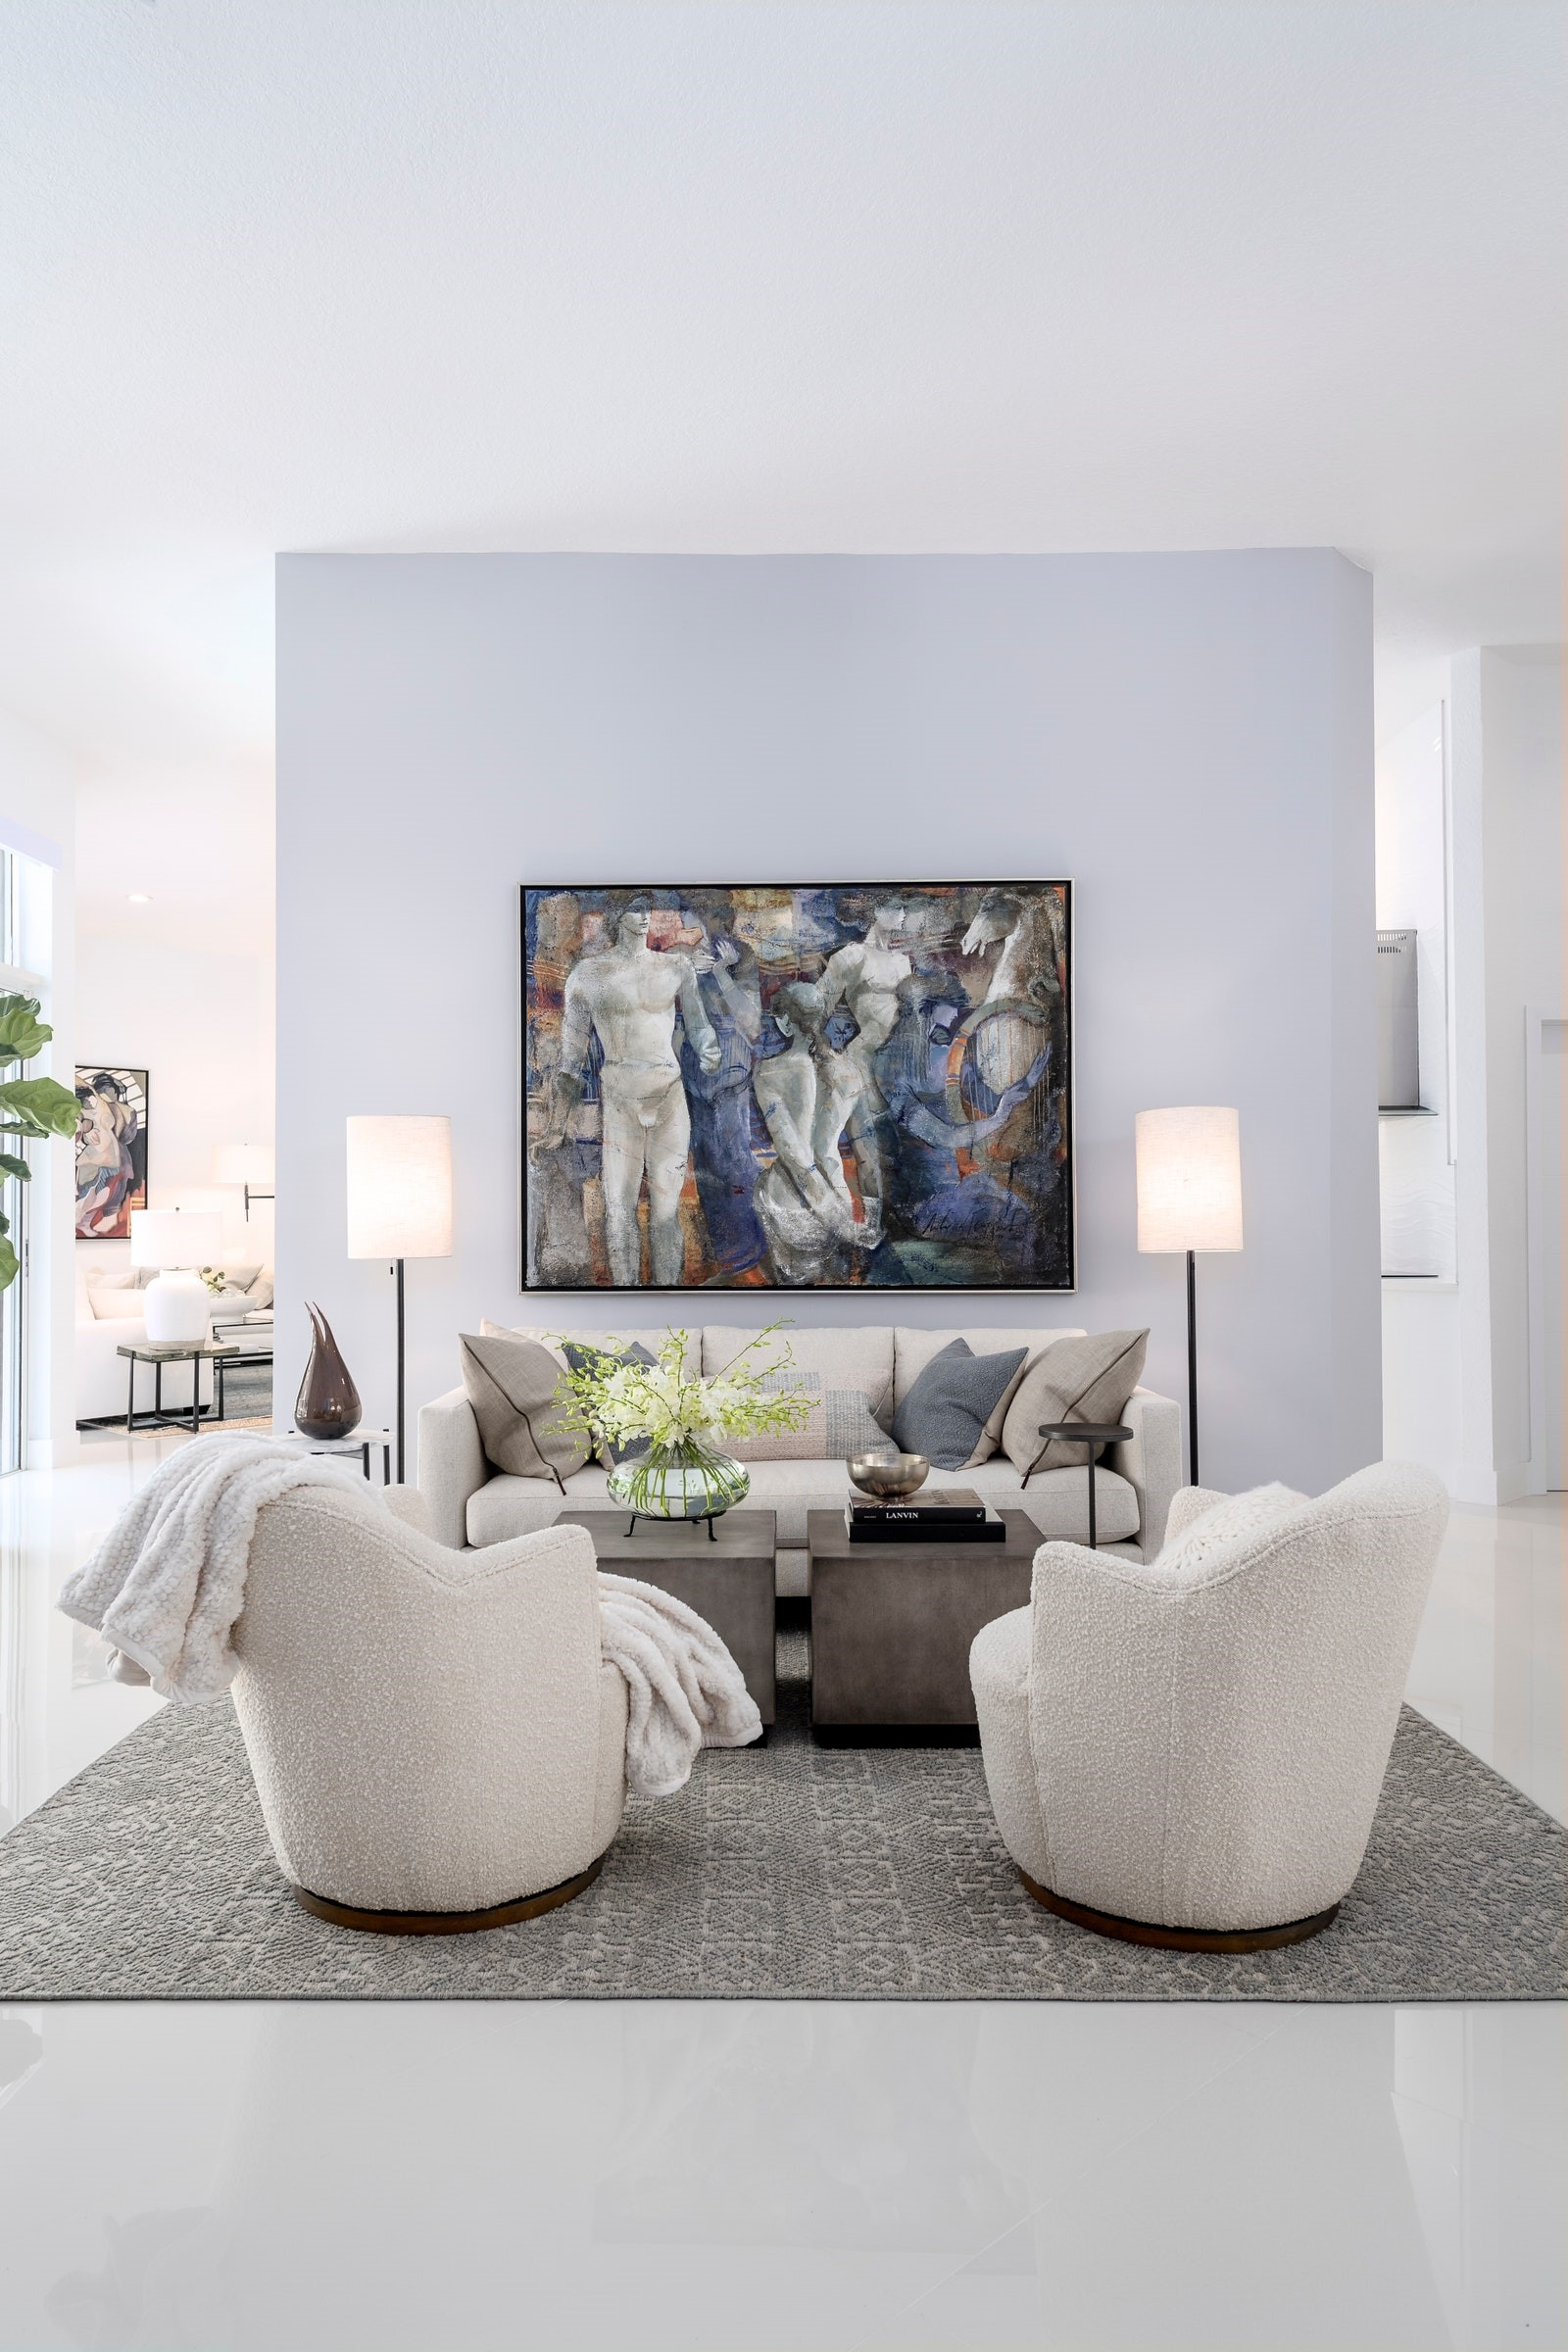 The living room lives up to its traditional Miami vibes with cool white walls and polished white marble floors. On the feature wall, a painting of Giselle transforms the room from cool elegance to WOW